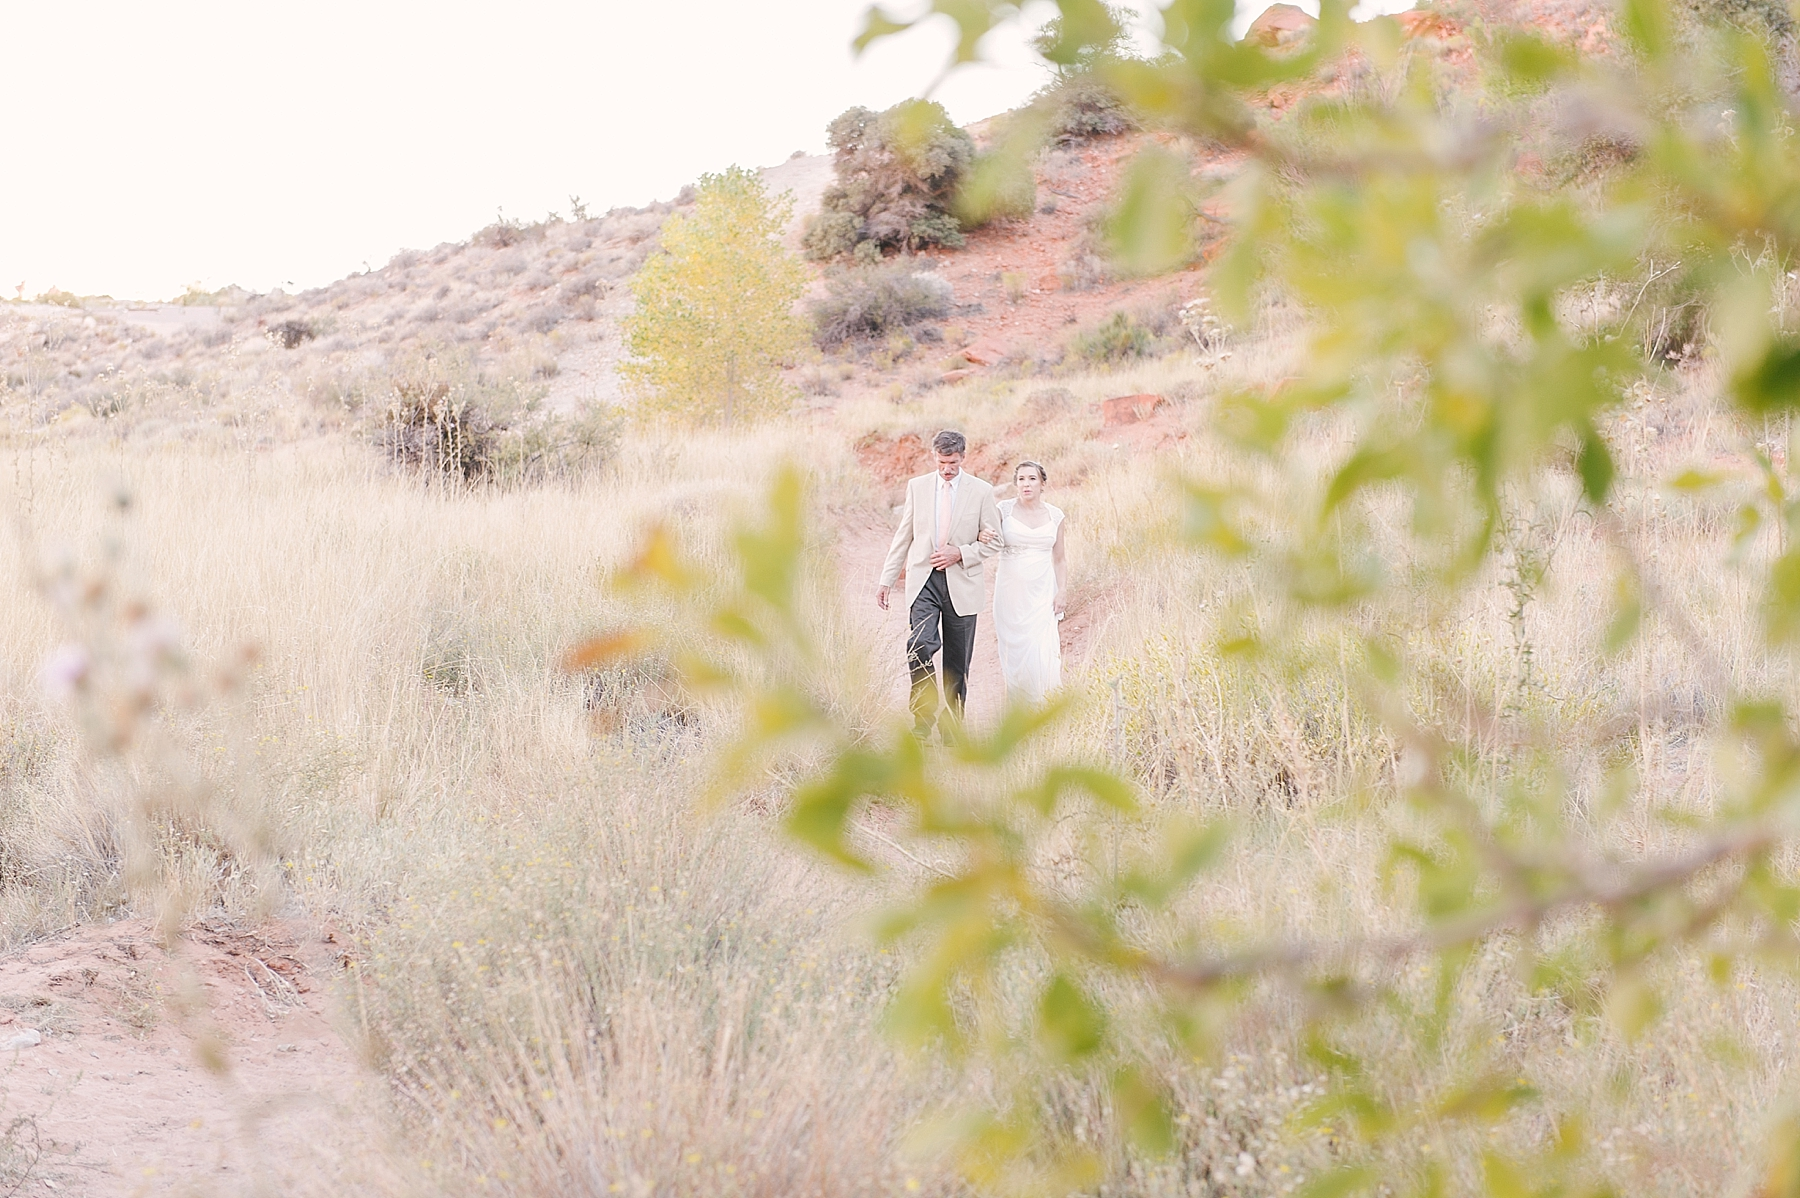 Red_Rock_Canyon_Wedding_las_vegas_Photos_blog-02.jpg